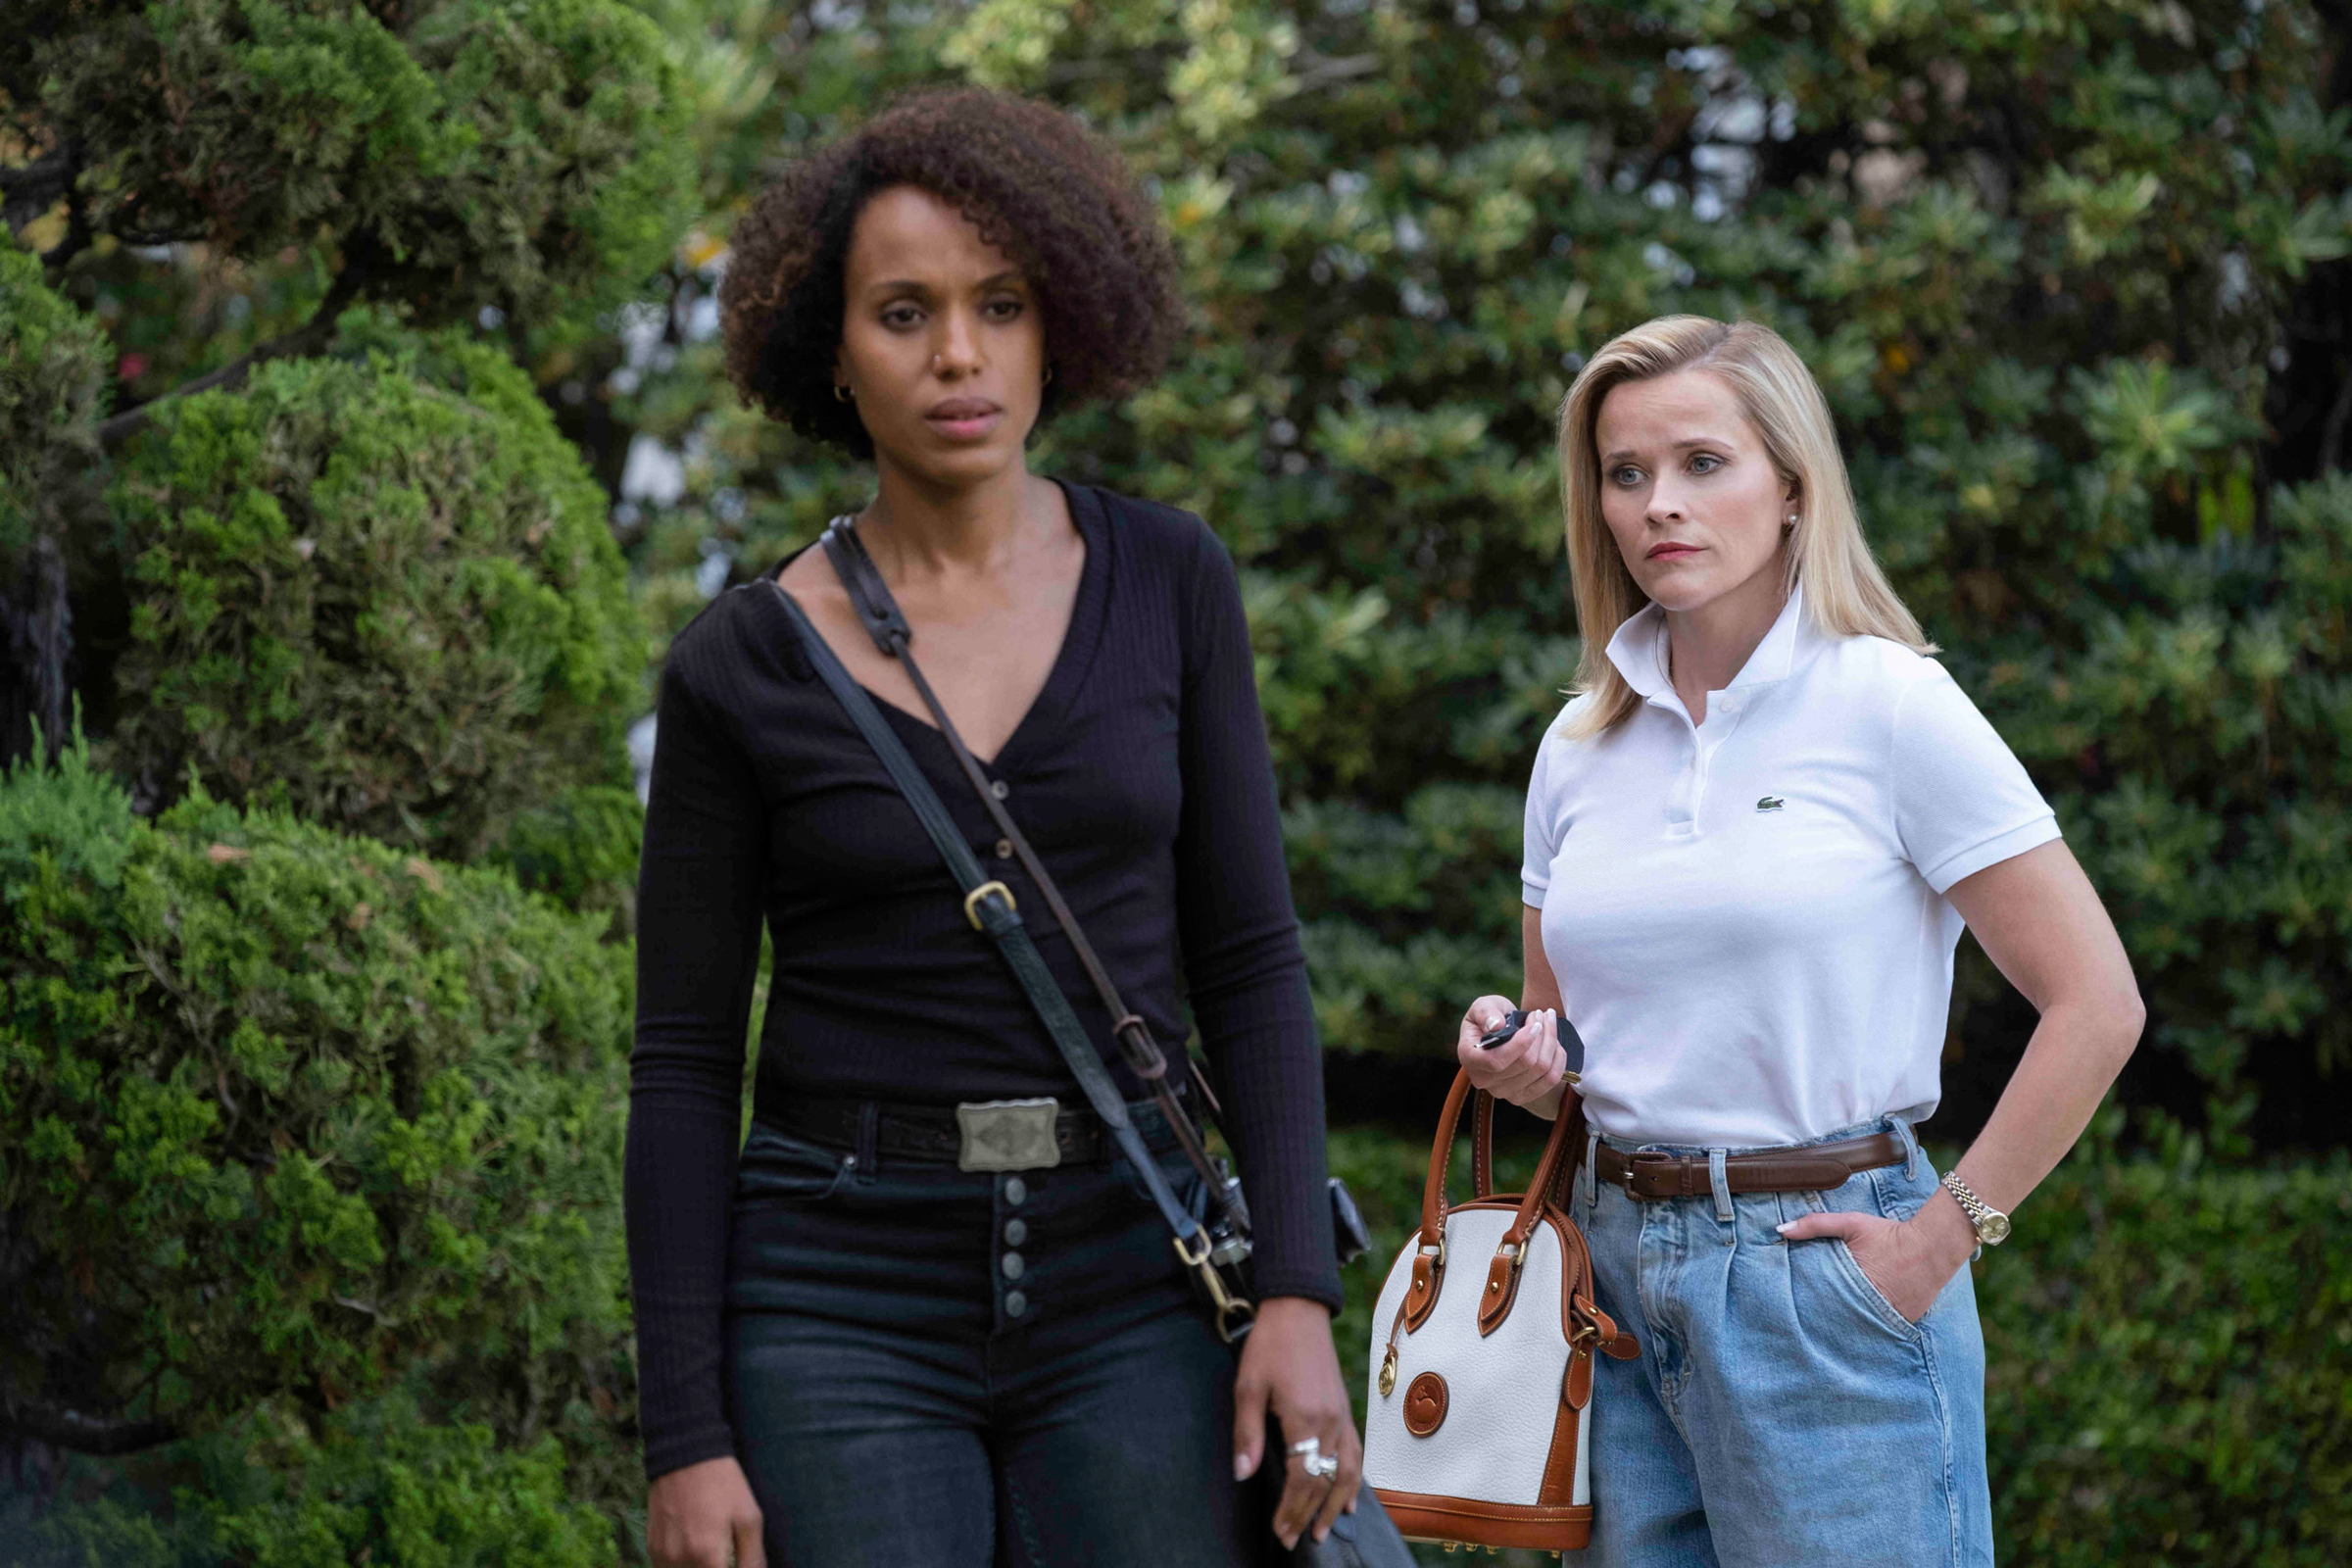 Reese Witherspoon, Kerry Washington Battle Over Shameful Secret in 'Little Fires Everywhere' Trailer